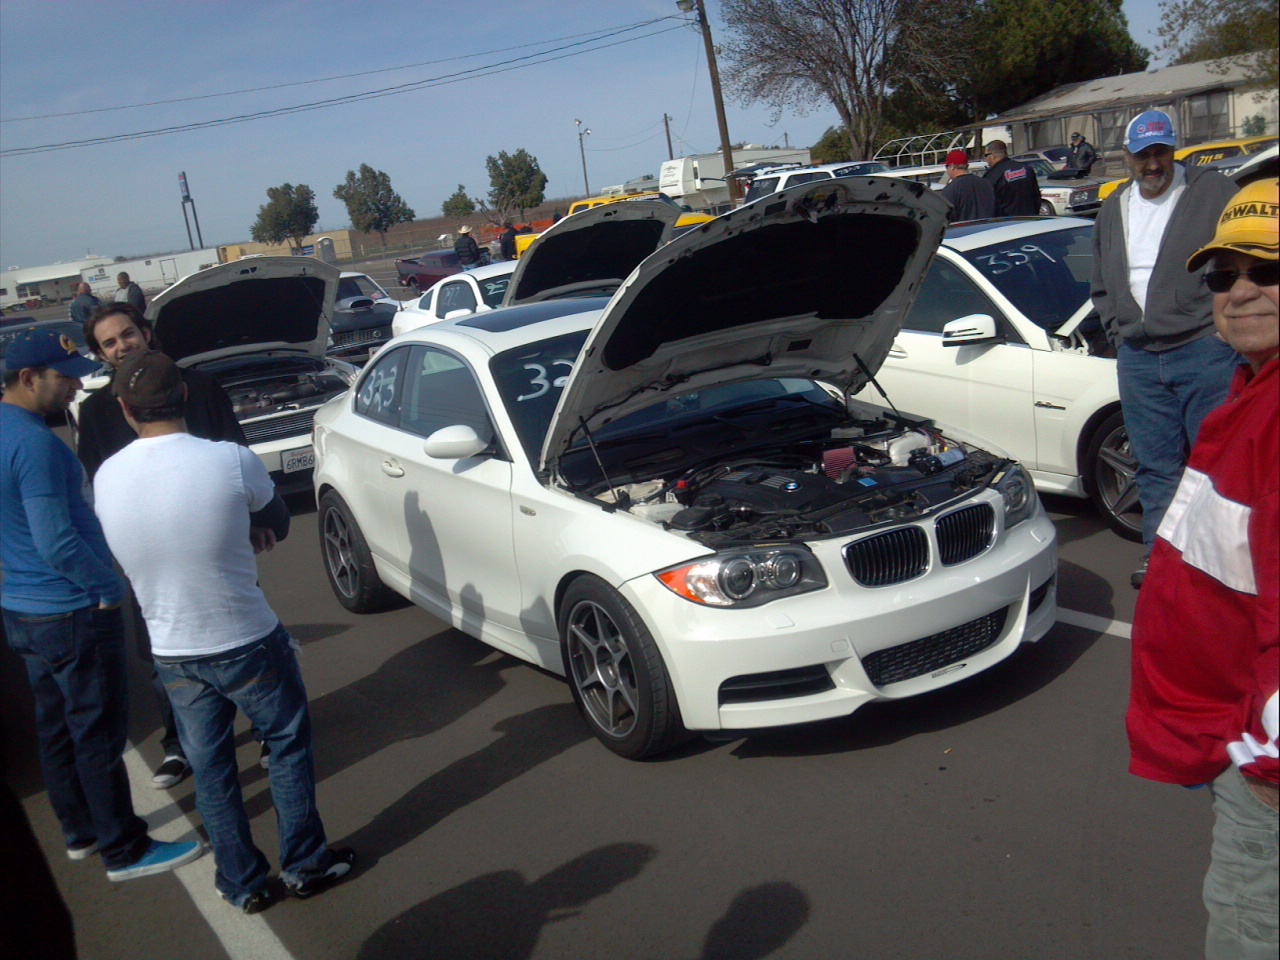 2008 BMW 135i JB4 (N54 Stock Turbo No Nitrous World Record)